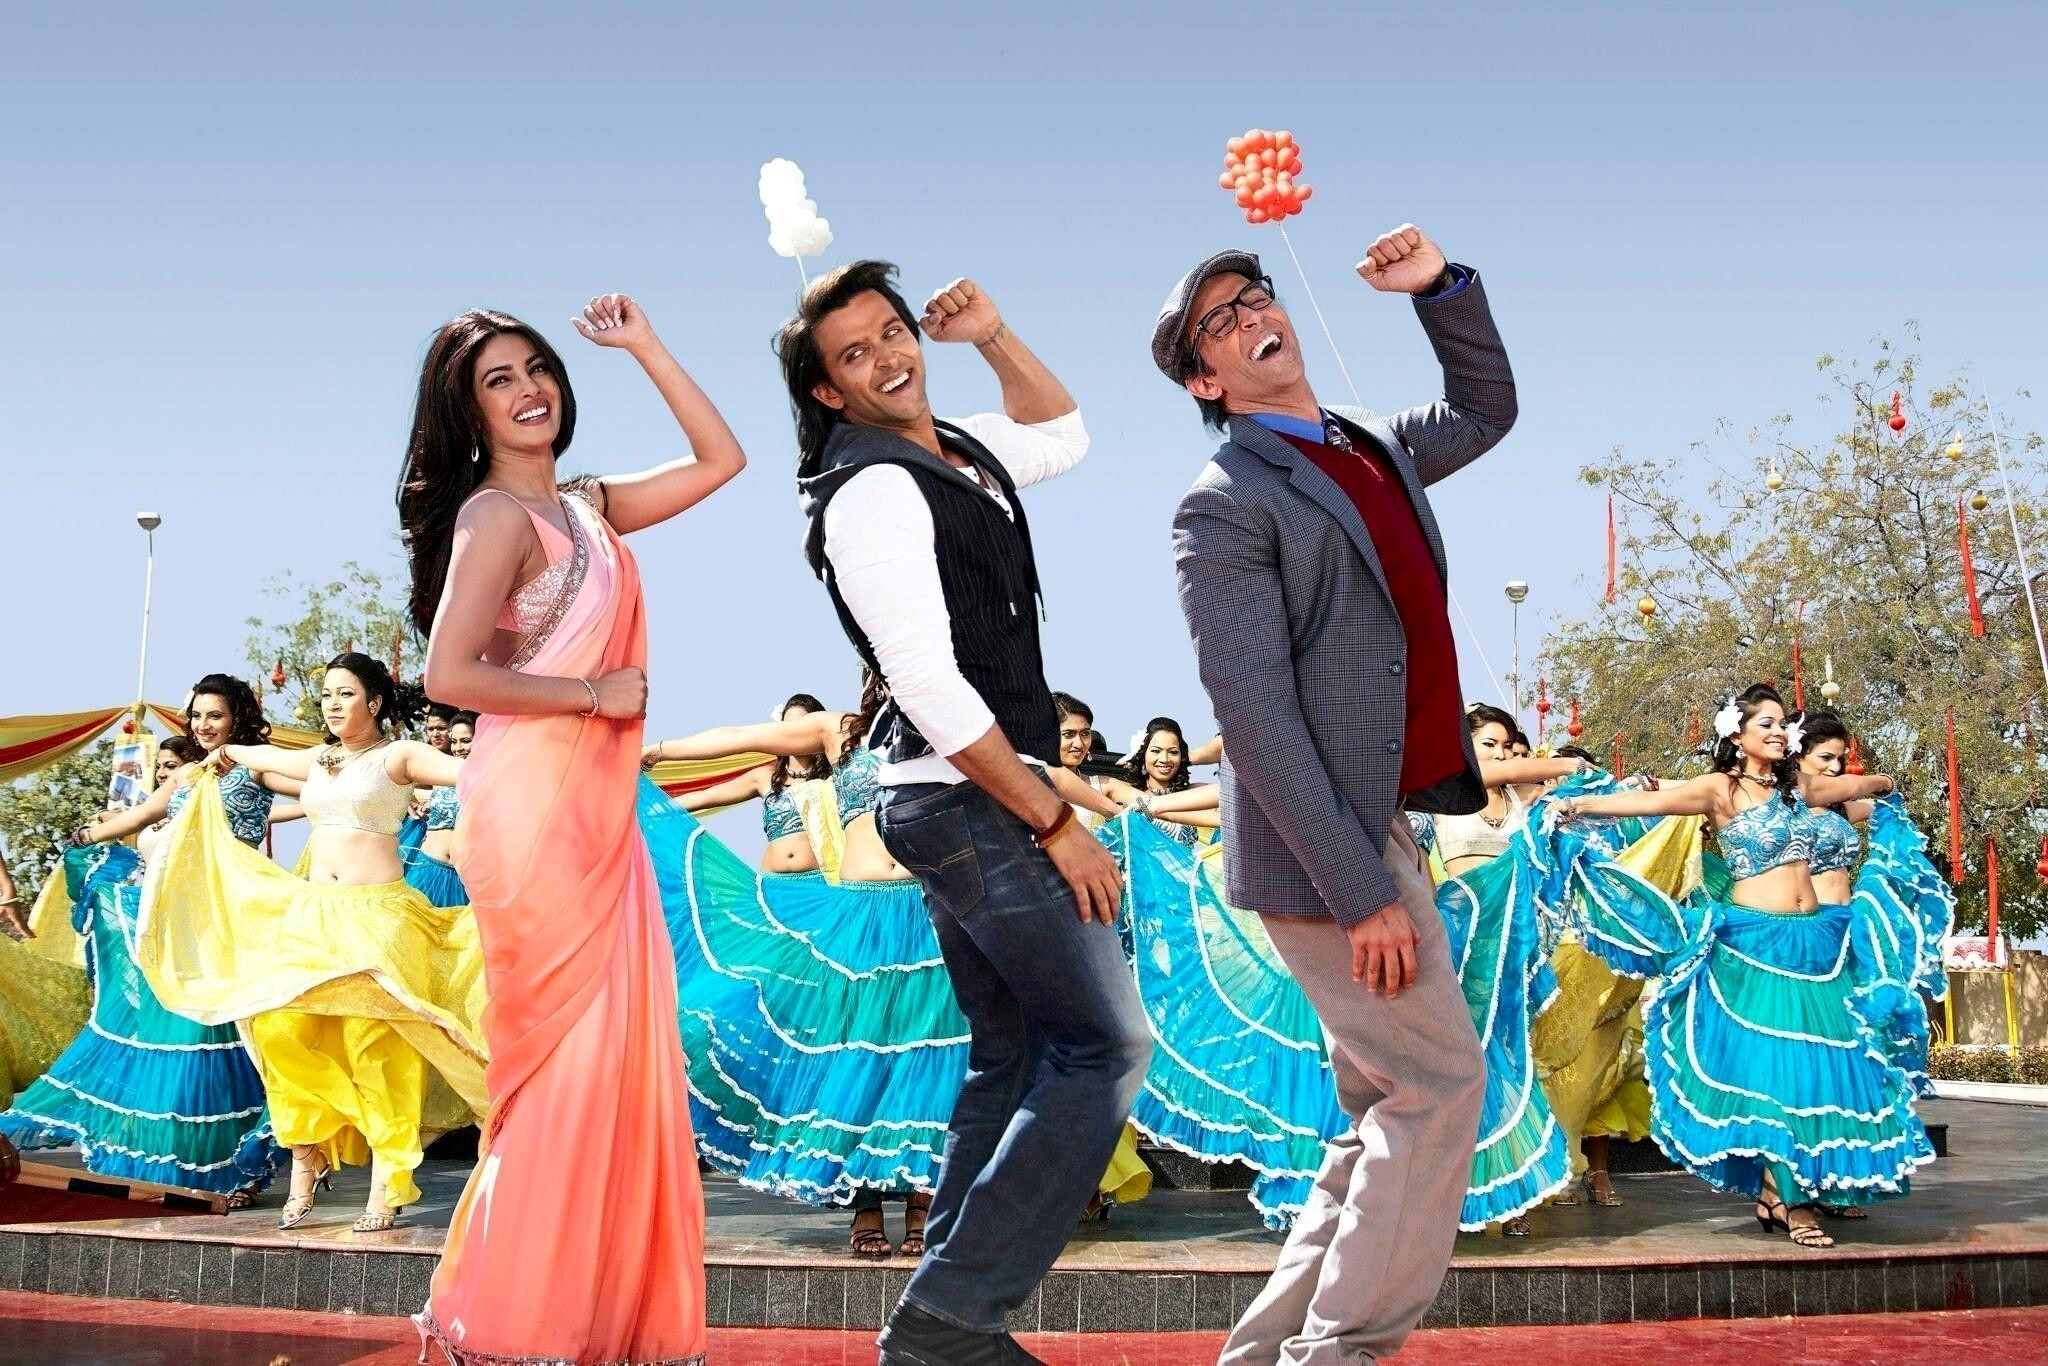 hrithik roshan and priyanka chopra in movie krrish 3 | hd wallpapers